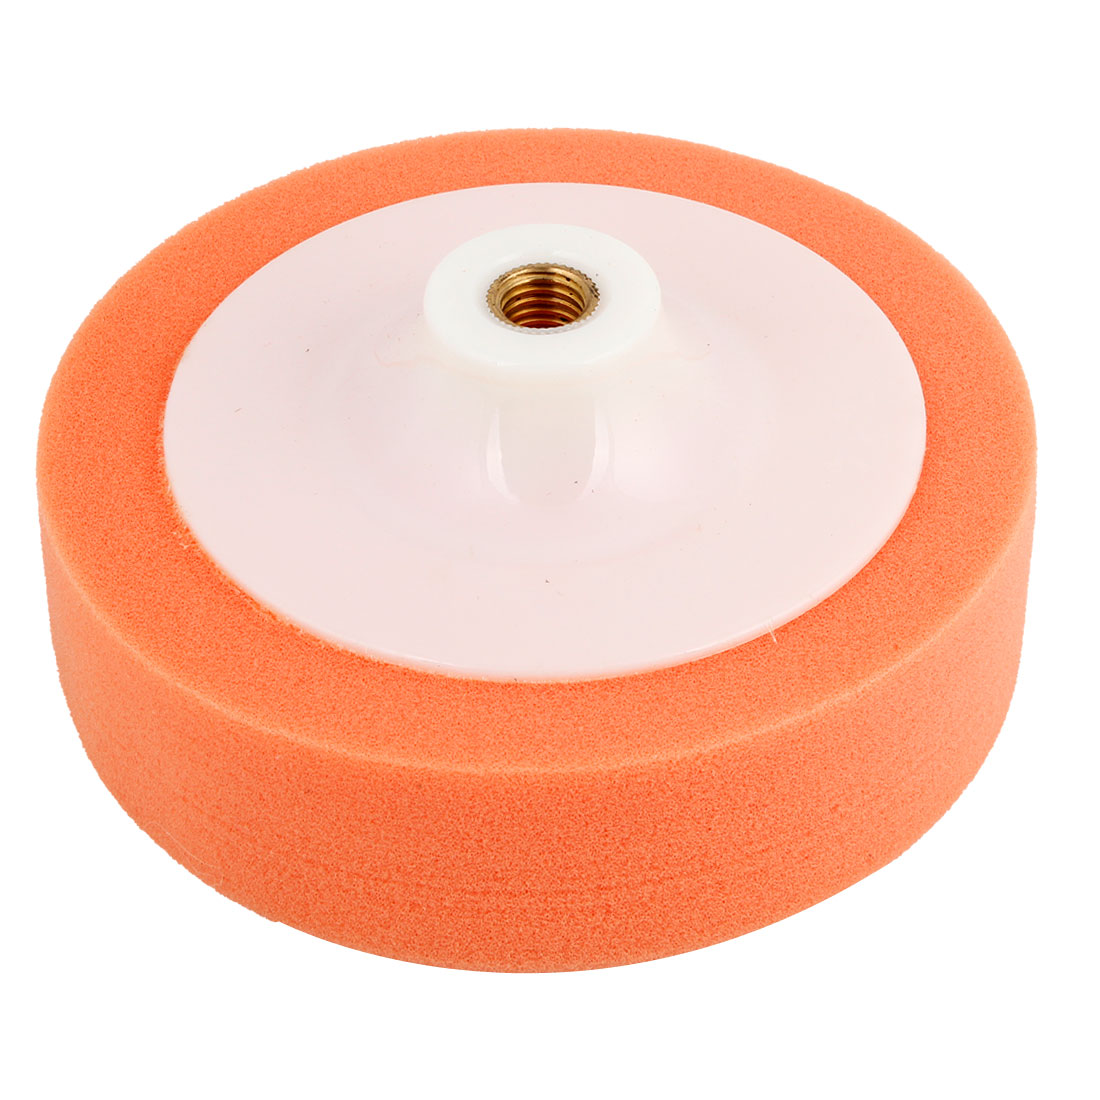 15cm Dia Orange Rounded Shape Soft Sponge Pad for Auto Car Wash Polishing